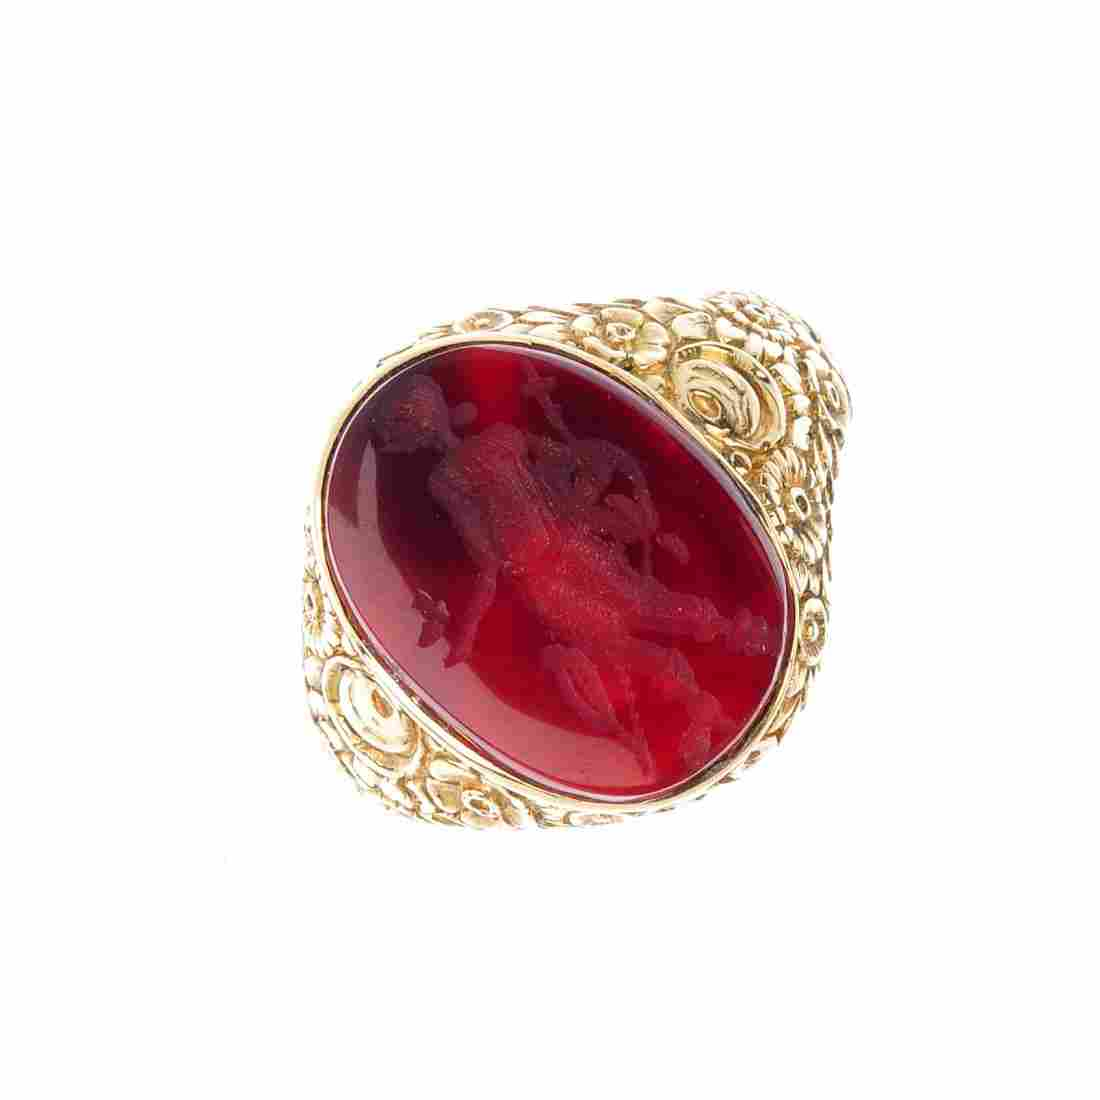 A gentleman's intaglio signet ring. The oval-shape